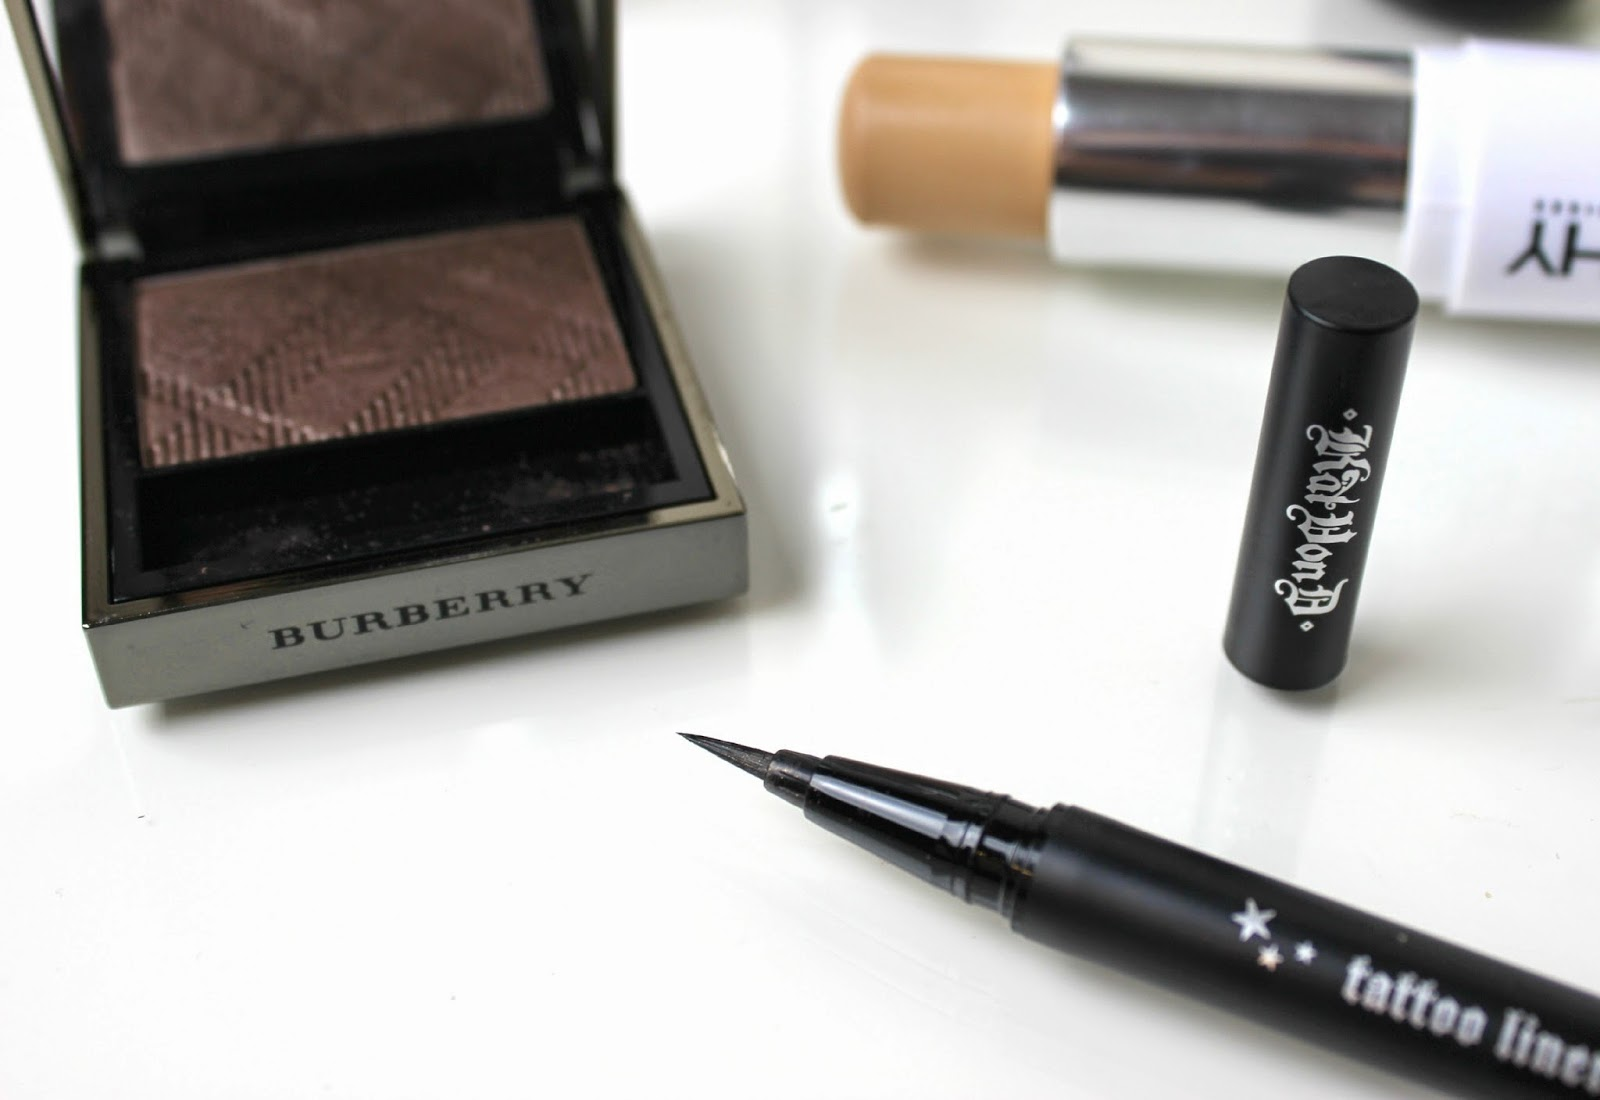 Burberry Midnight Brown Sheer Eye Shadow & Kat Von D Tattoo Liner